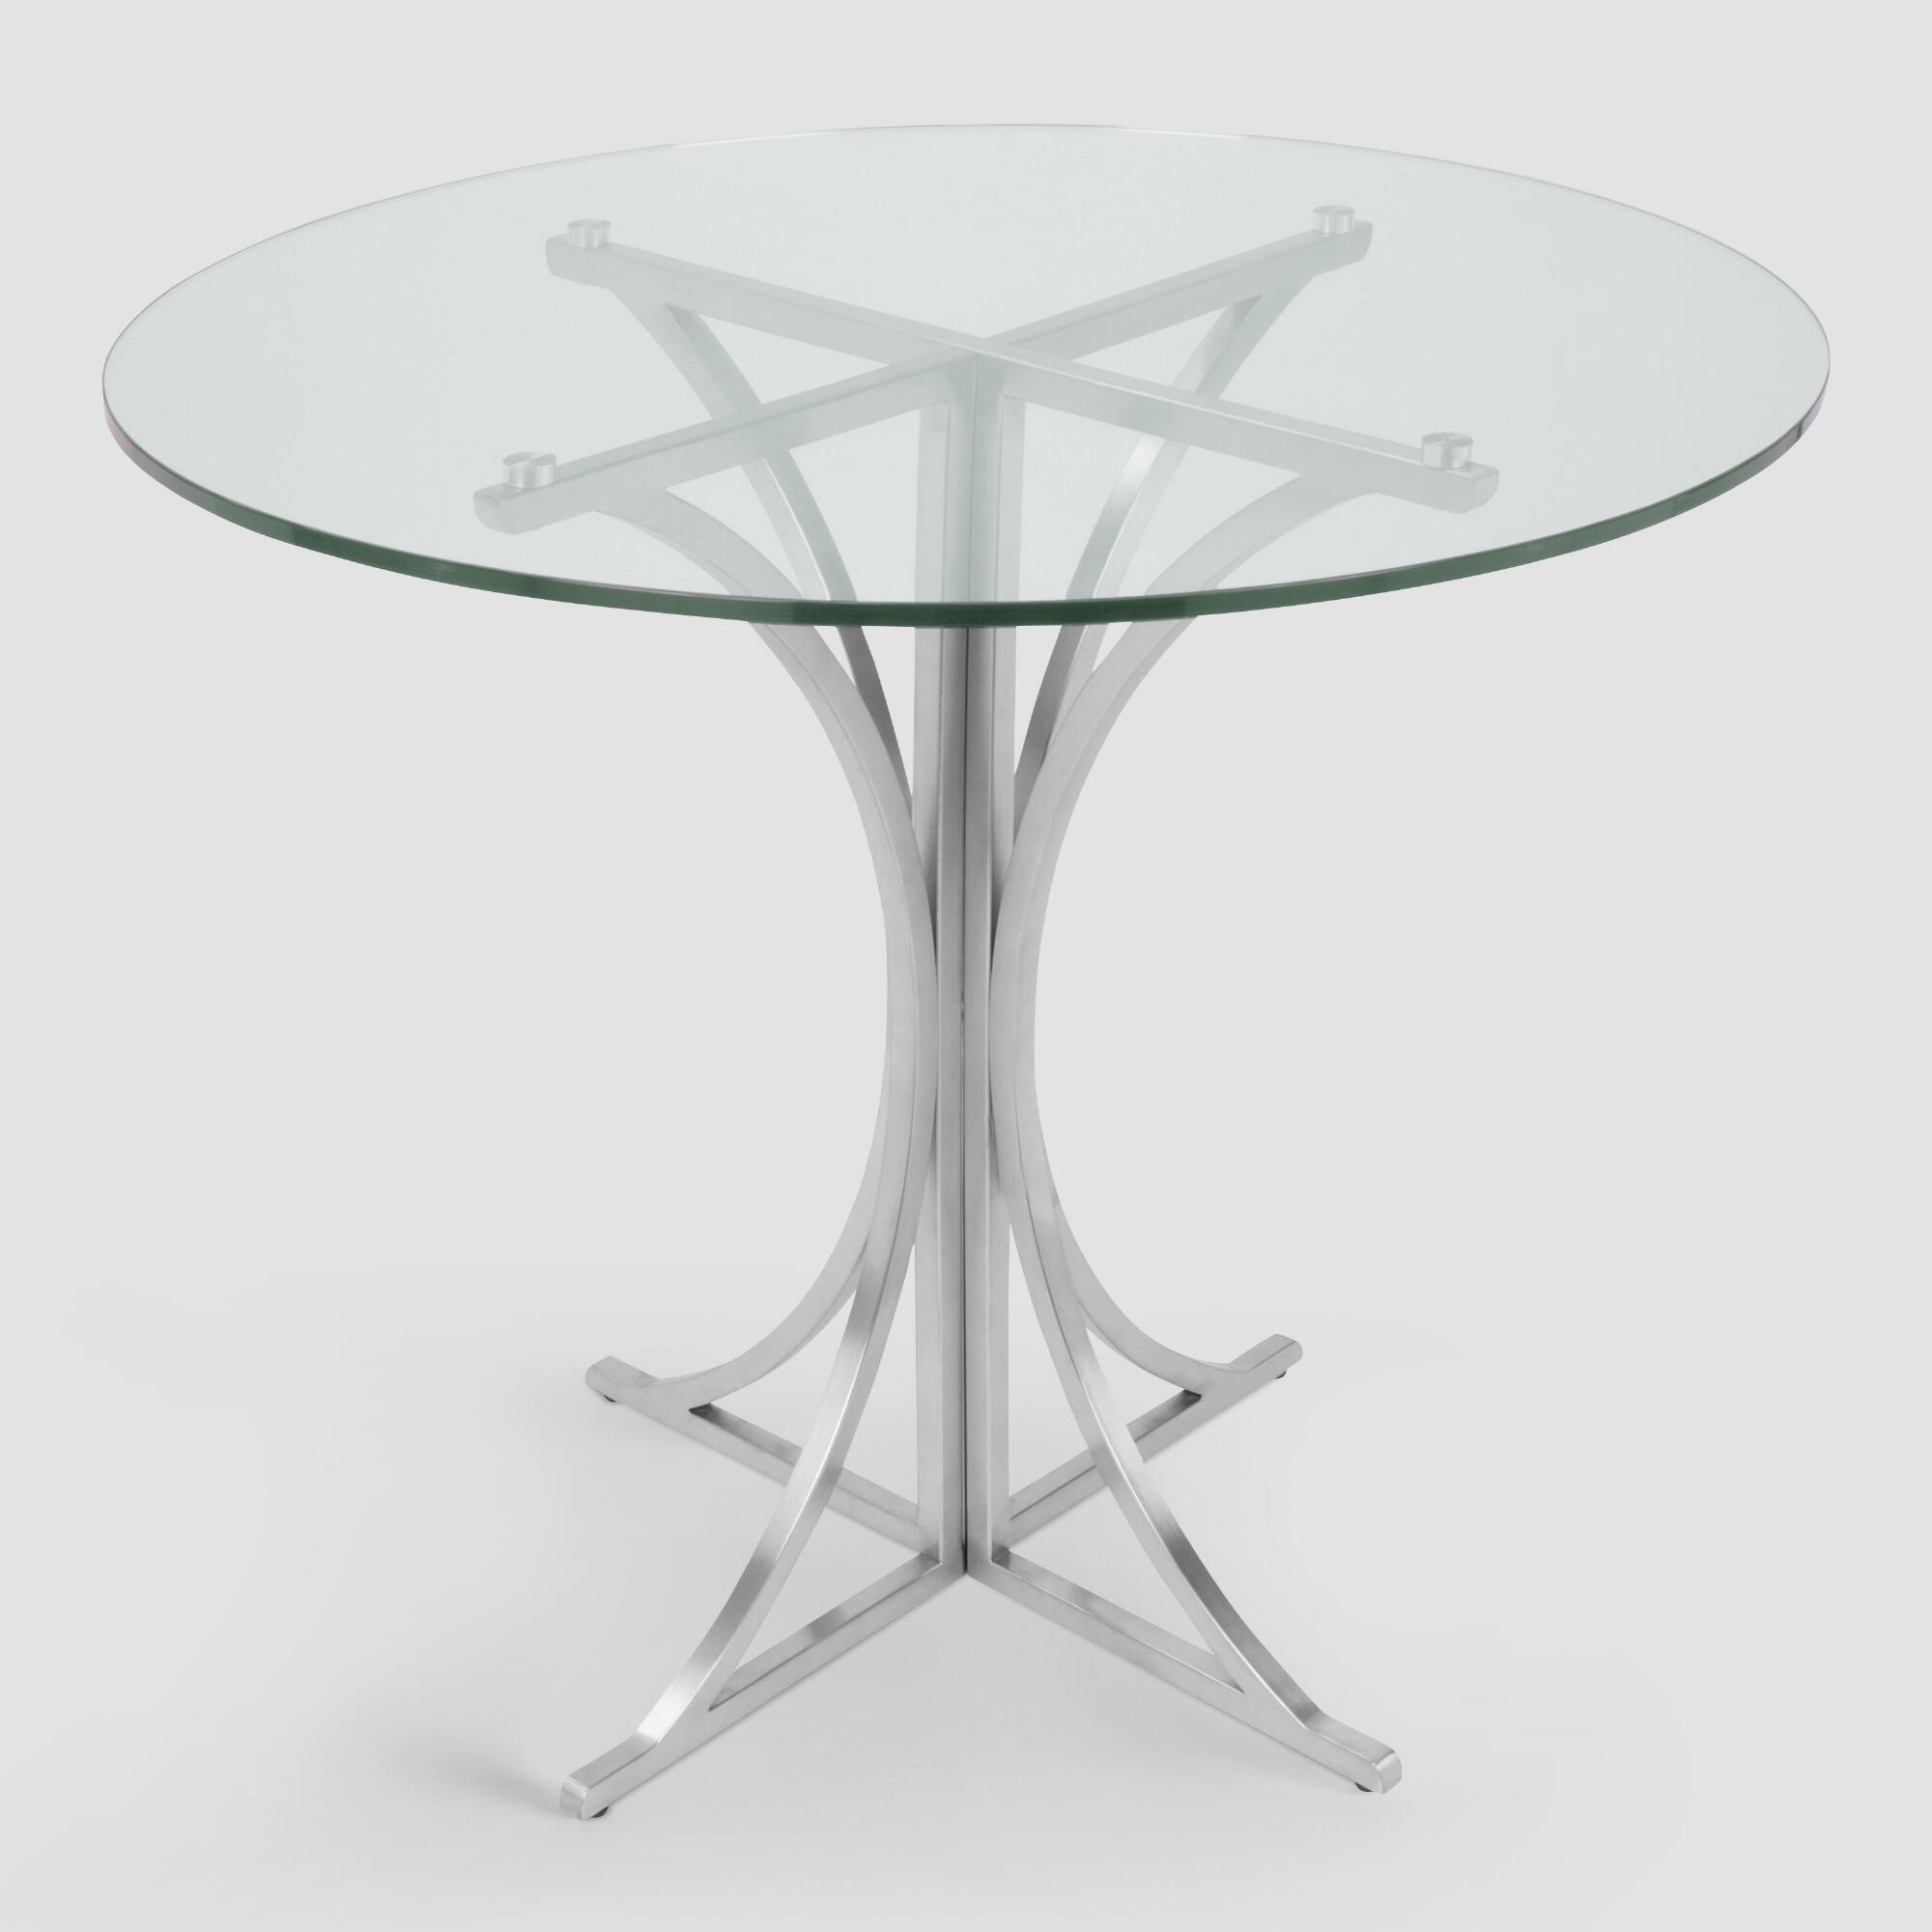 Metal and glass nerissa dining table world market for Metal glass dining table